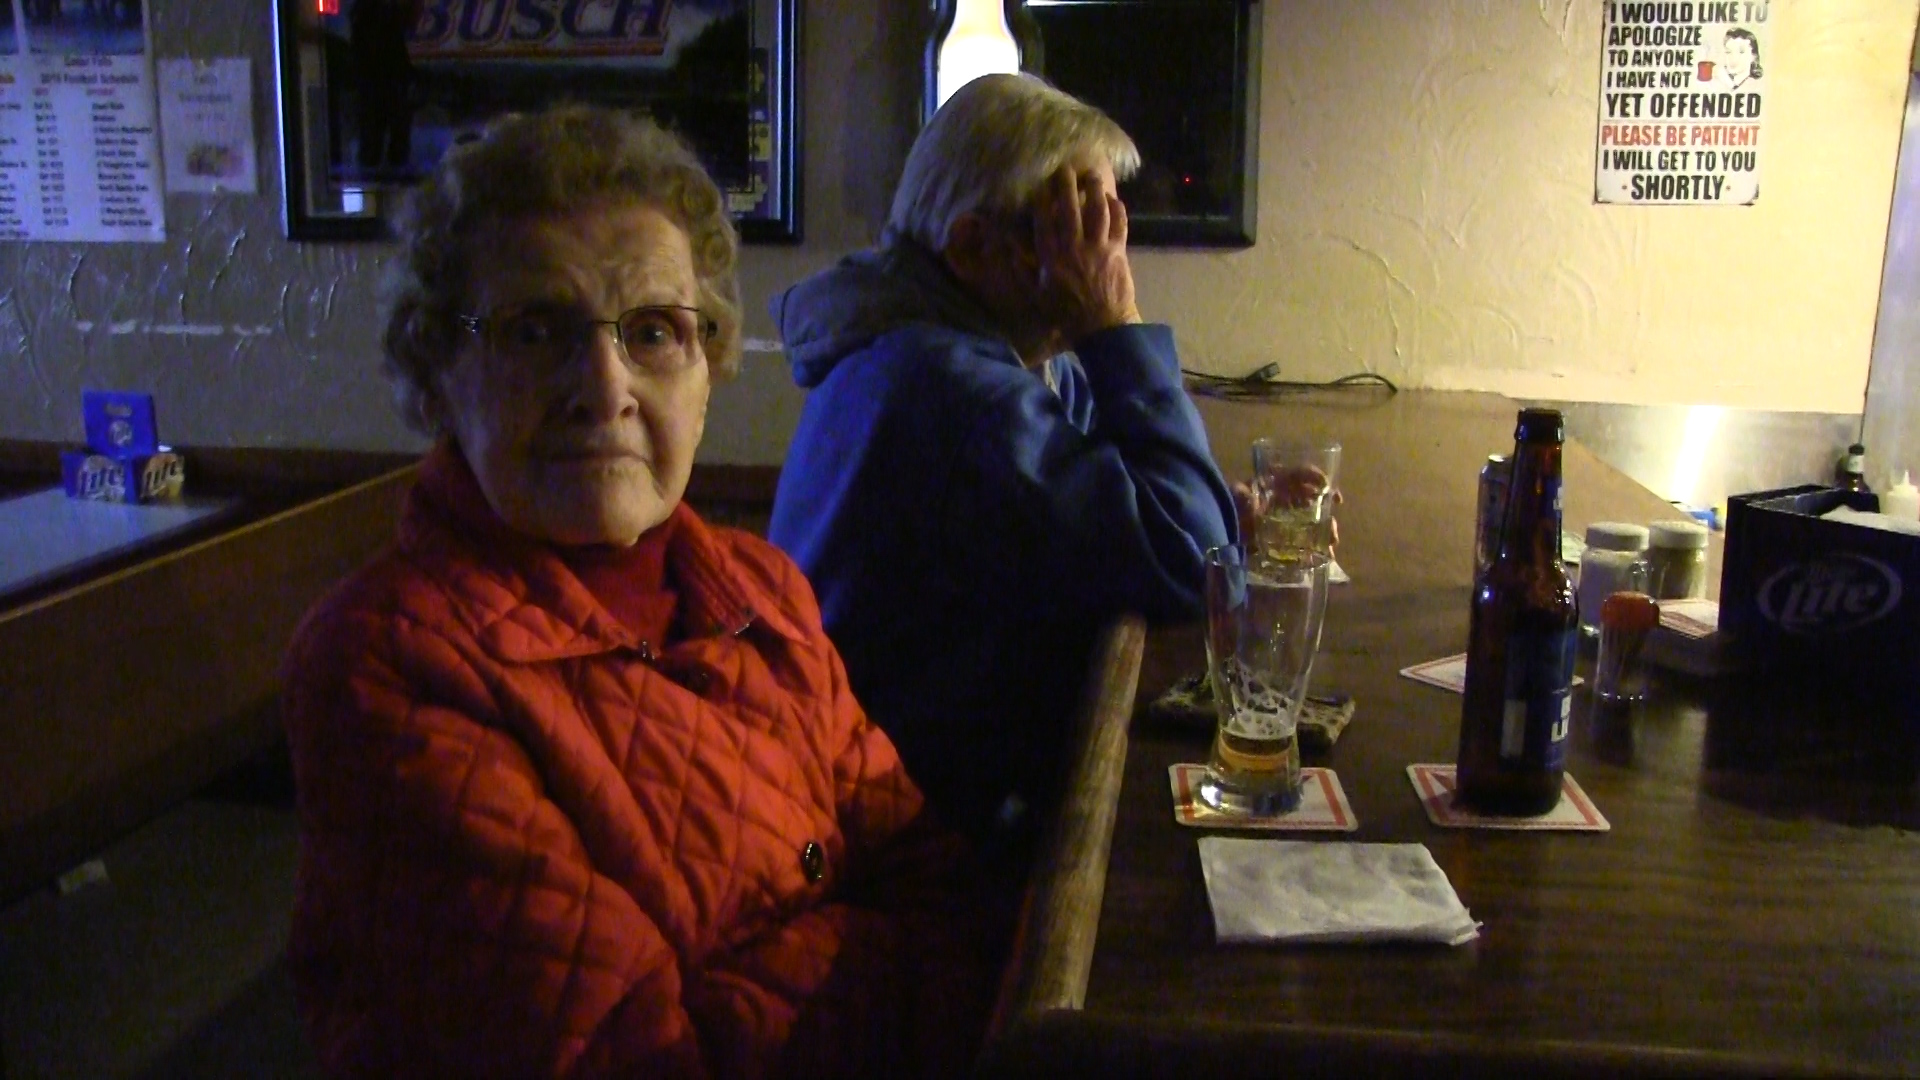 This 93-year-old woman was drinking a Bud at the end of the Lime Springs bar. Photo by Media Milwaukee staff.